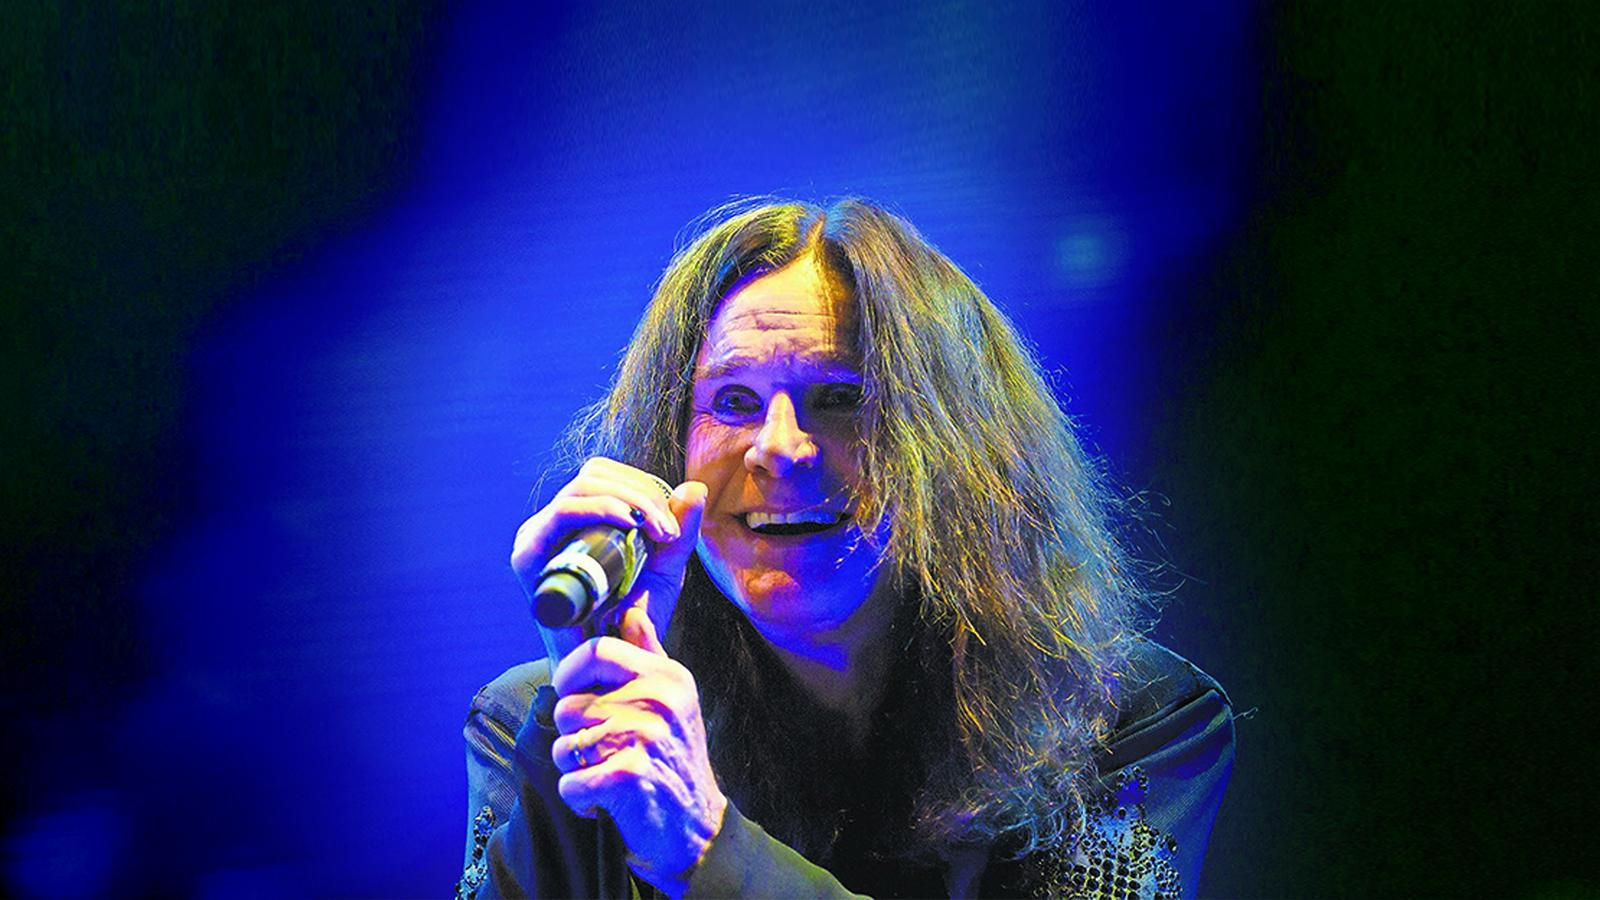 Ozzy Osbourne (Rescheduled from 10/13/2018, 7/20/2019)